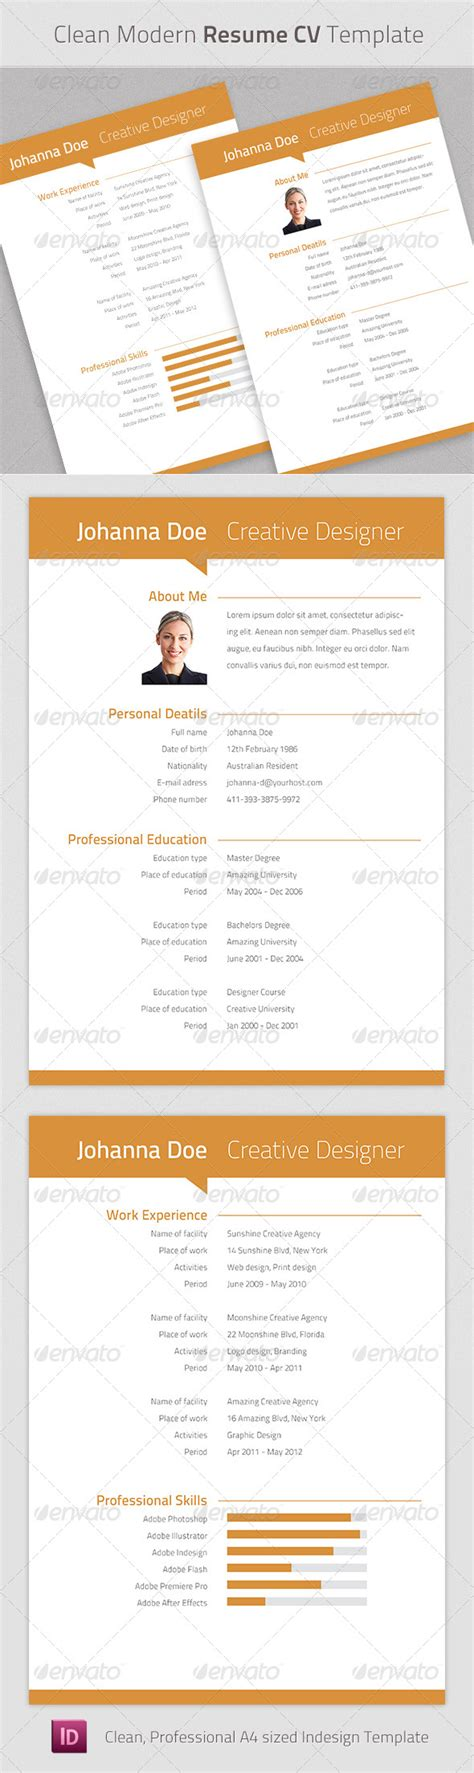 3 Cv Resume Indesign Templates Clean by Clean Modern Resume Cv Indesign Template Graphicriver